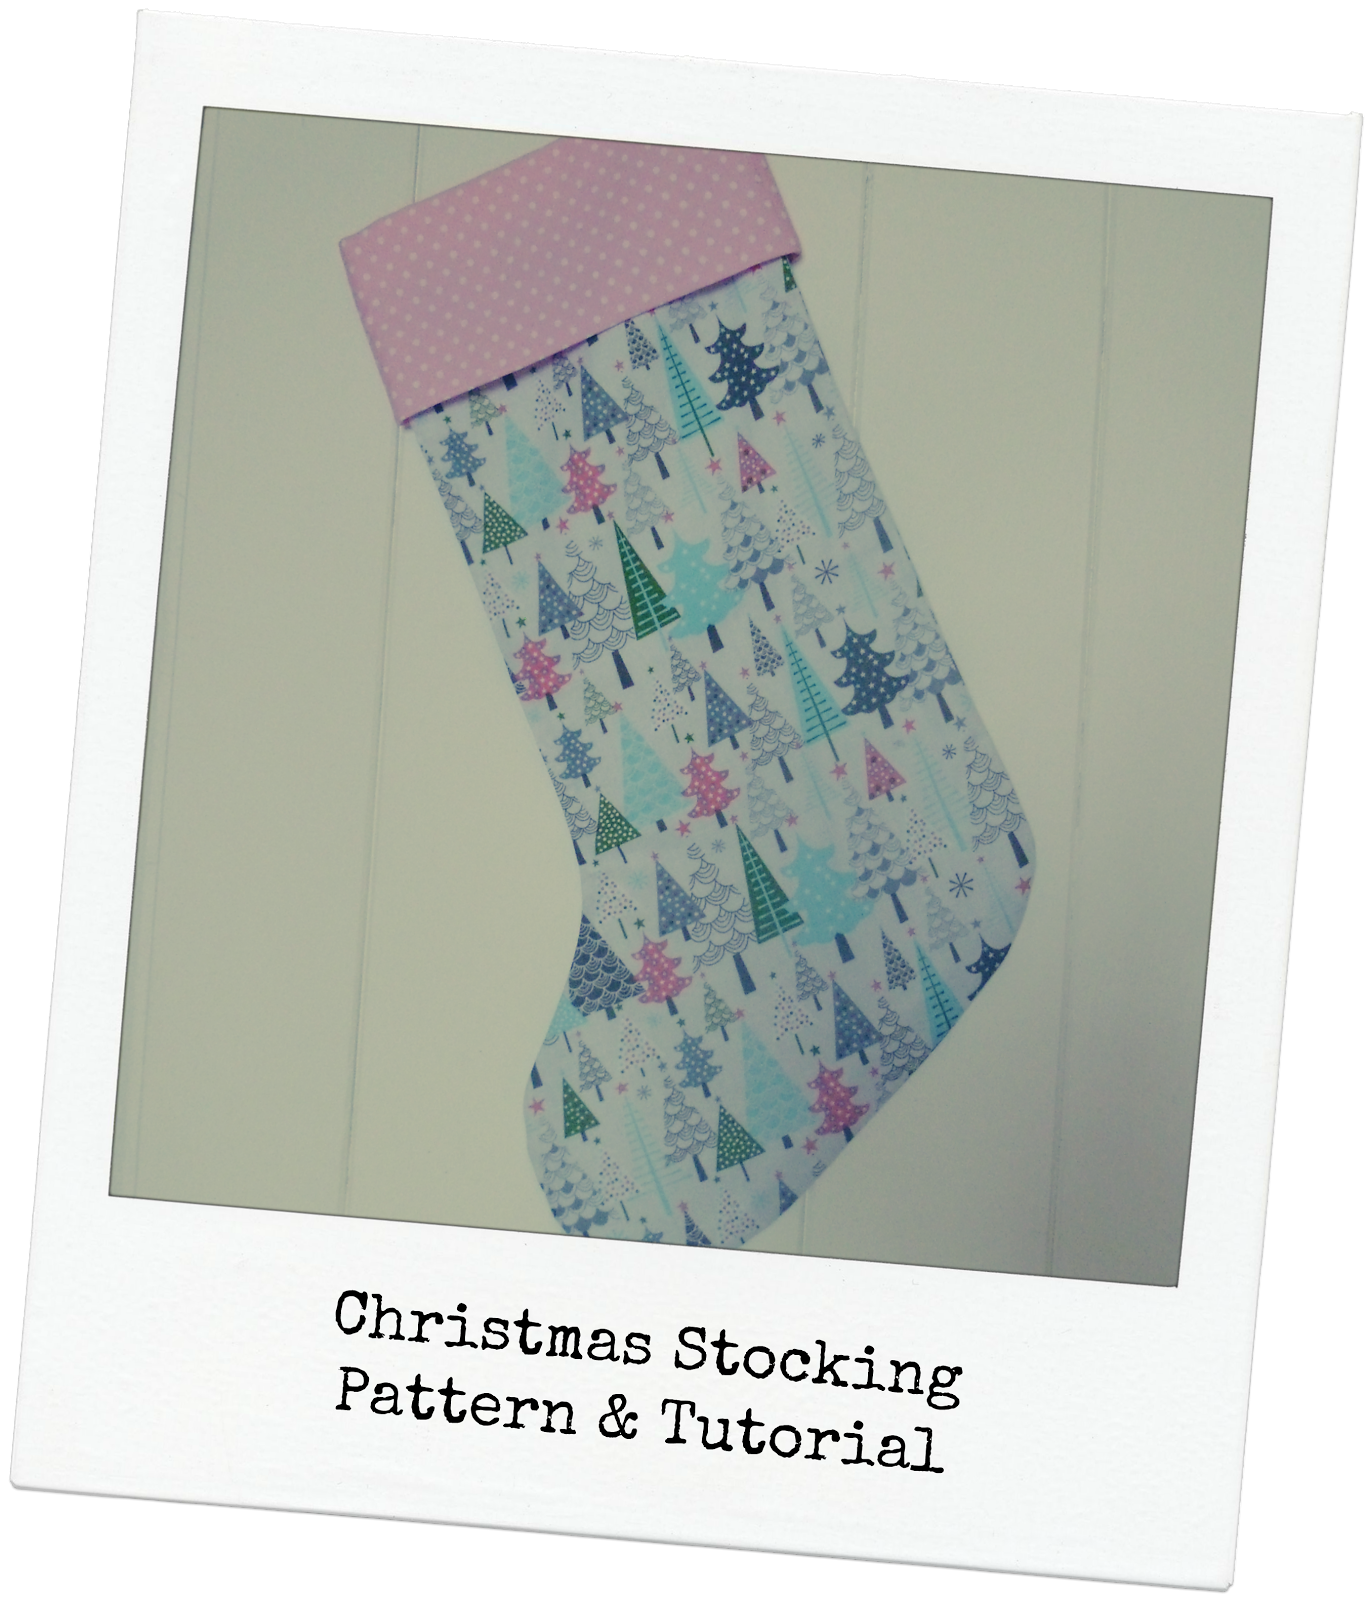 Christmas Stocking Tutorial | Fun projects | Pinterest | Tutorials ...